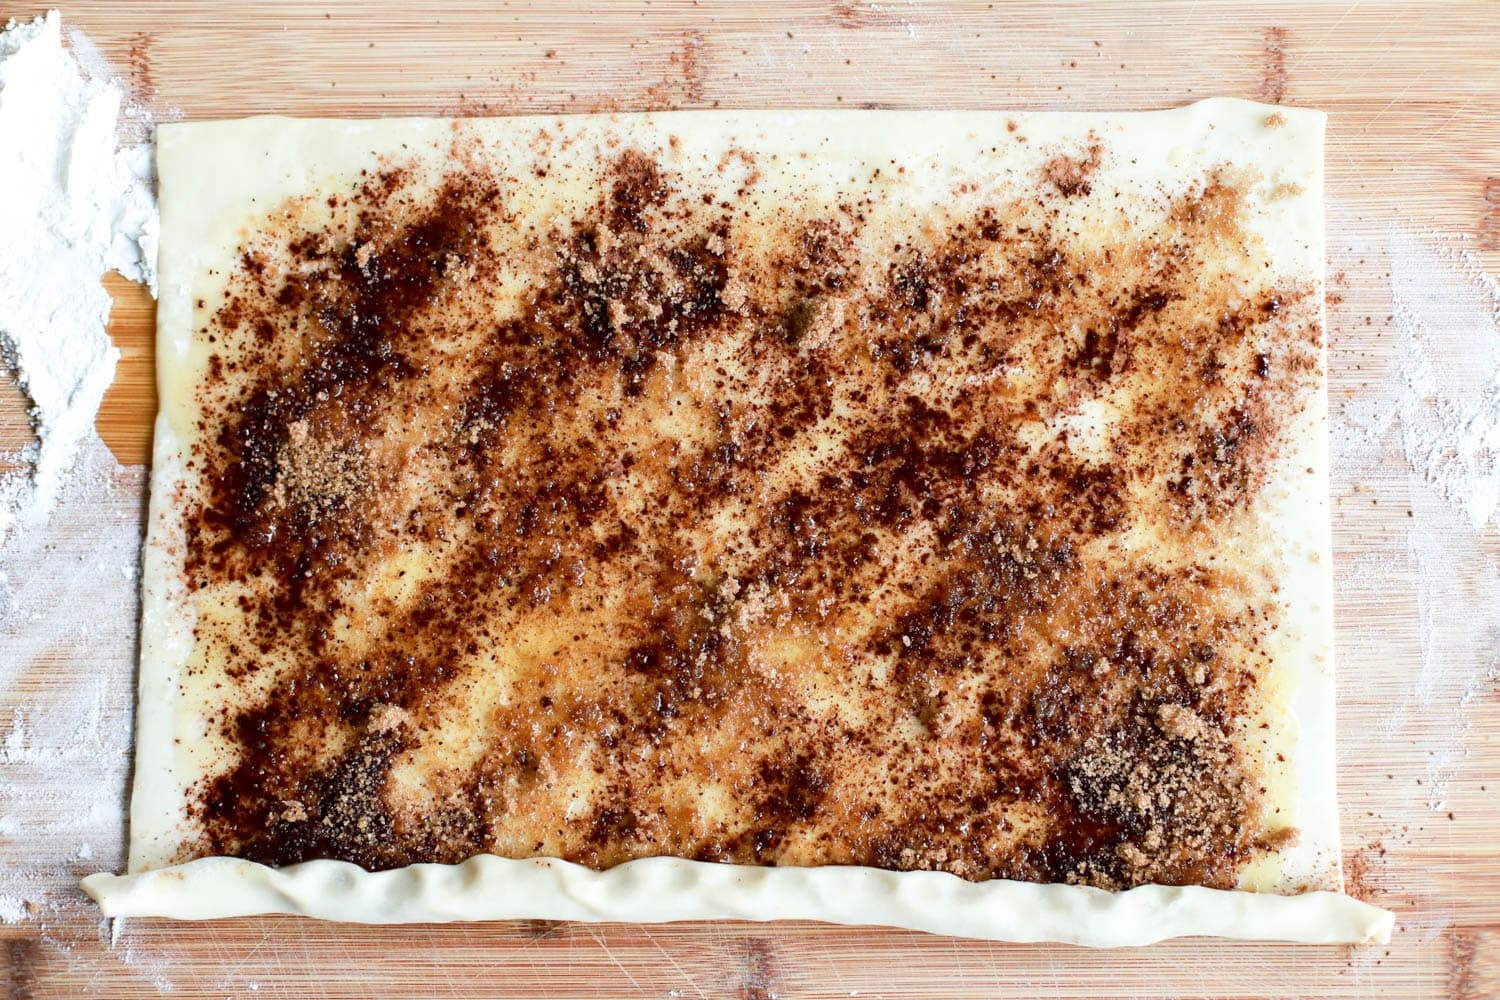 puff pastry with cinnamon filling